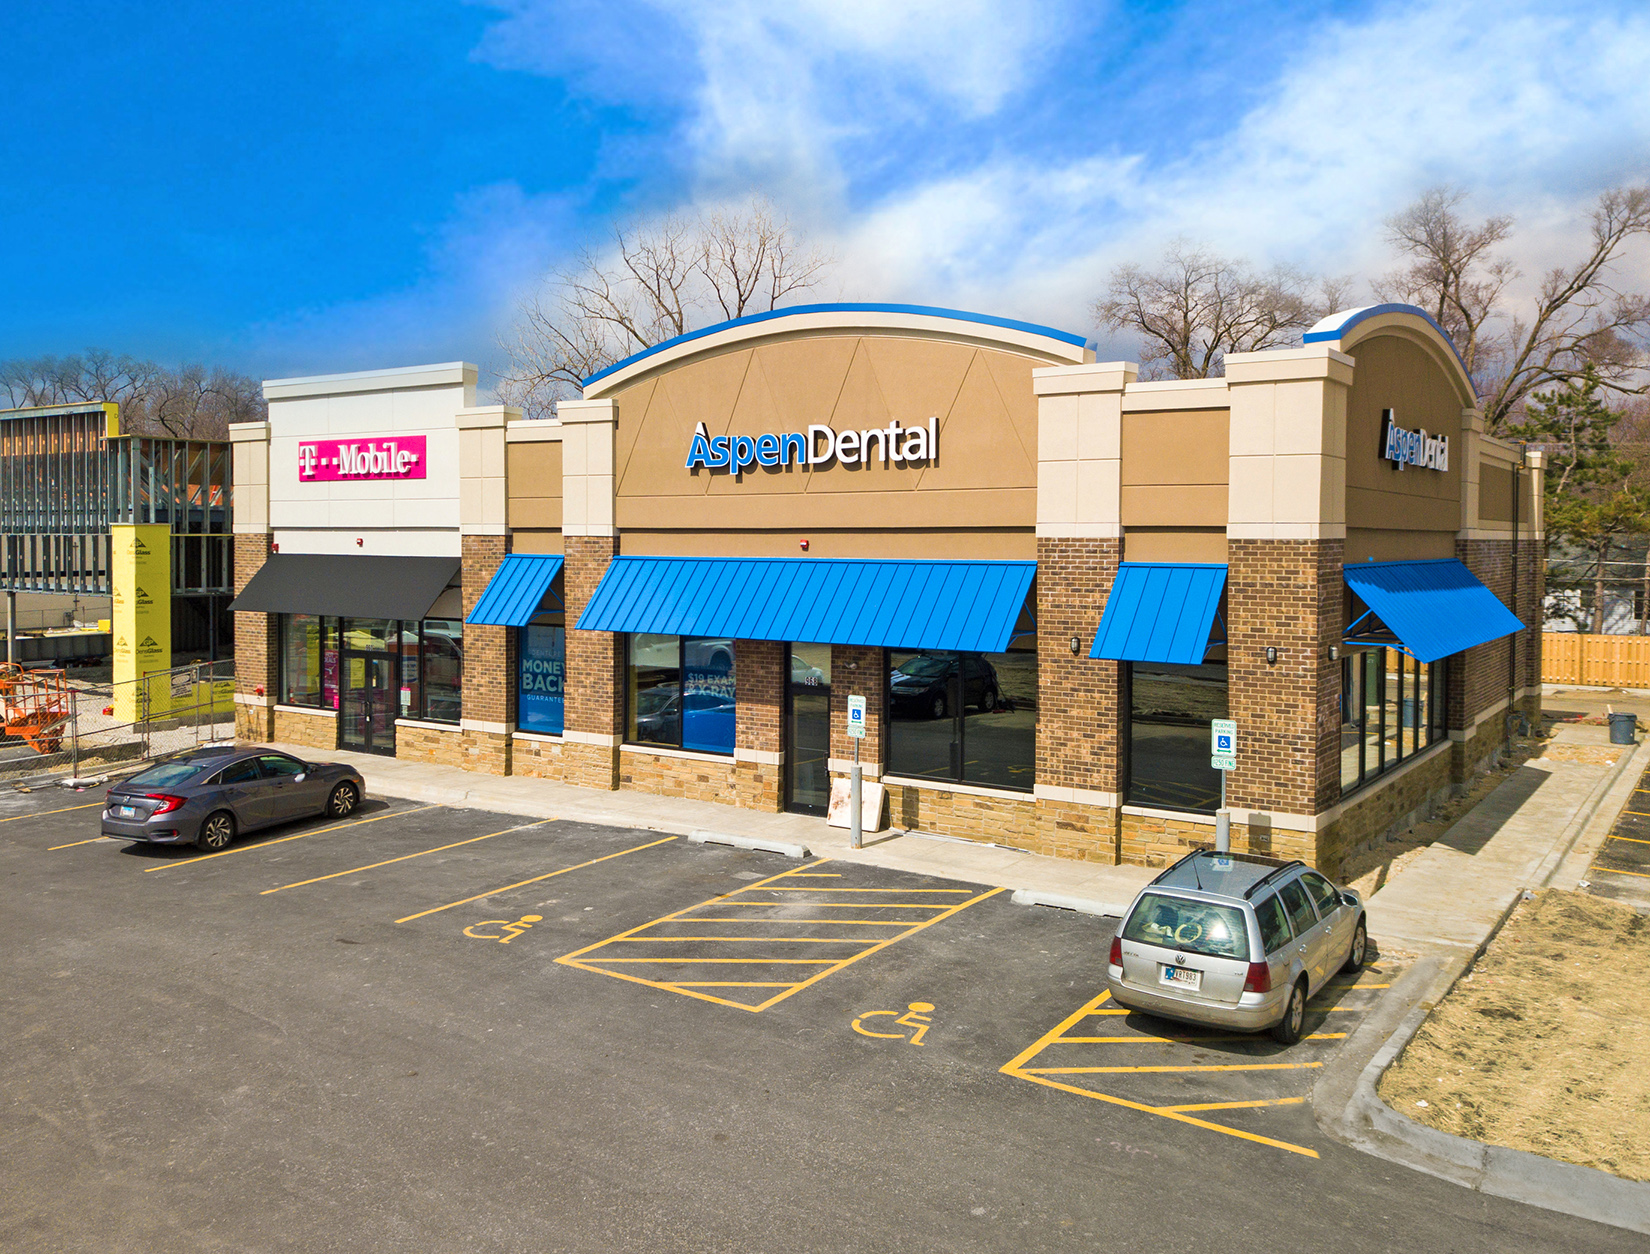 Hanley Investment Group Arranges Sale of Brand-New Two-Tenant Aspen Dental and T-Mobile in Chicago Metro Area to California Buyer for $3.1 Million